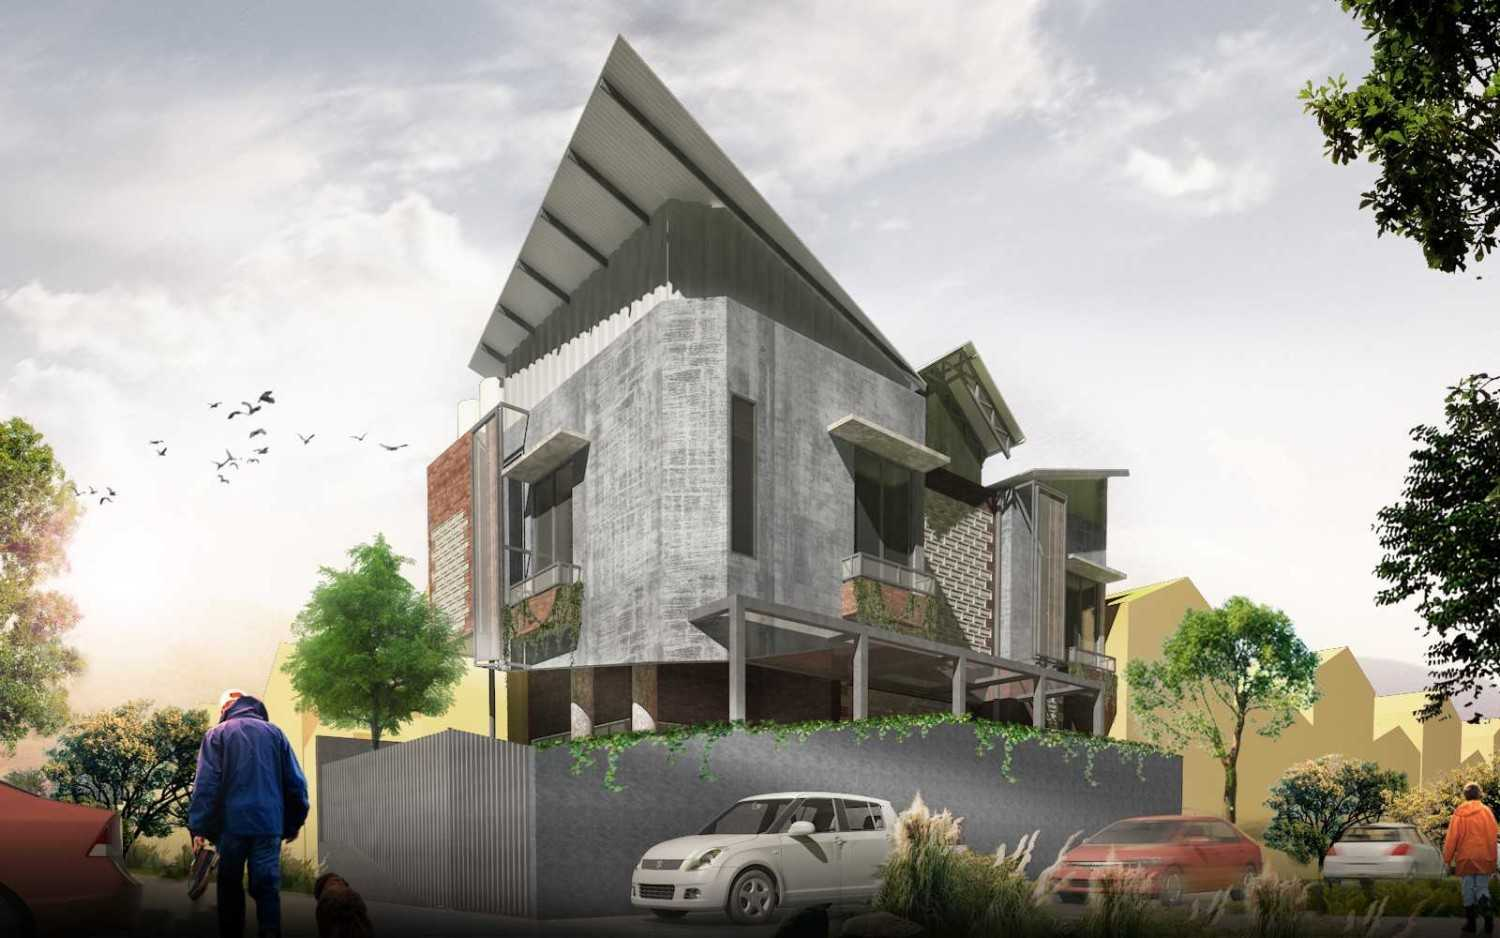 Jasa Design and Build studioindoNEOsia di Semarang